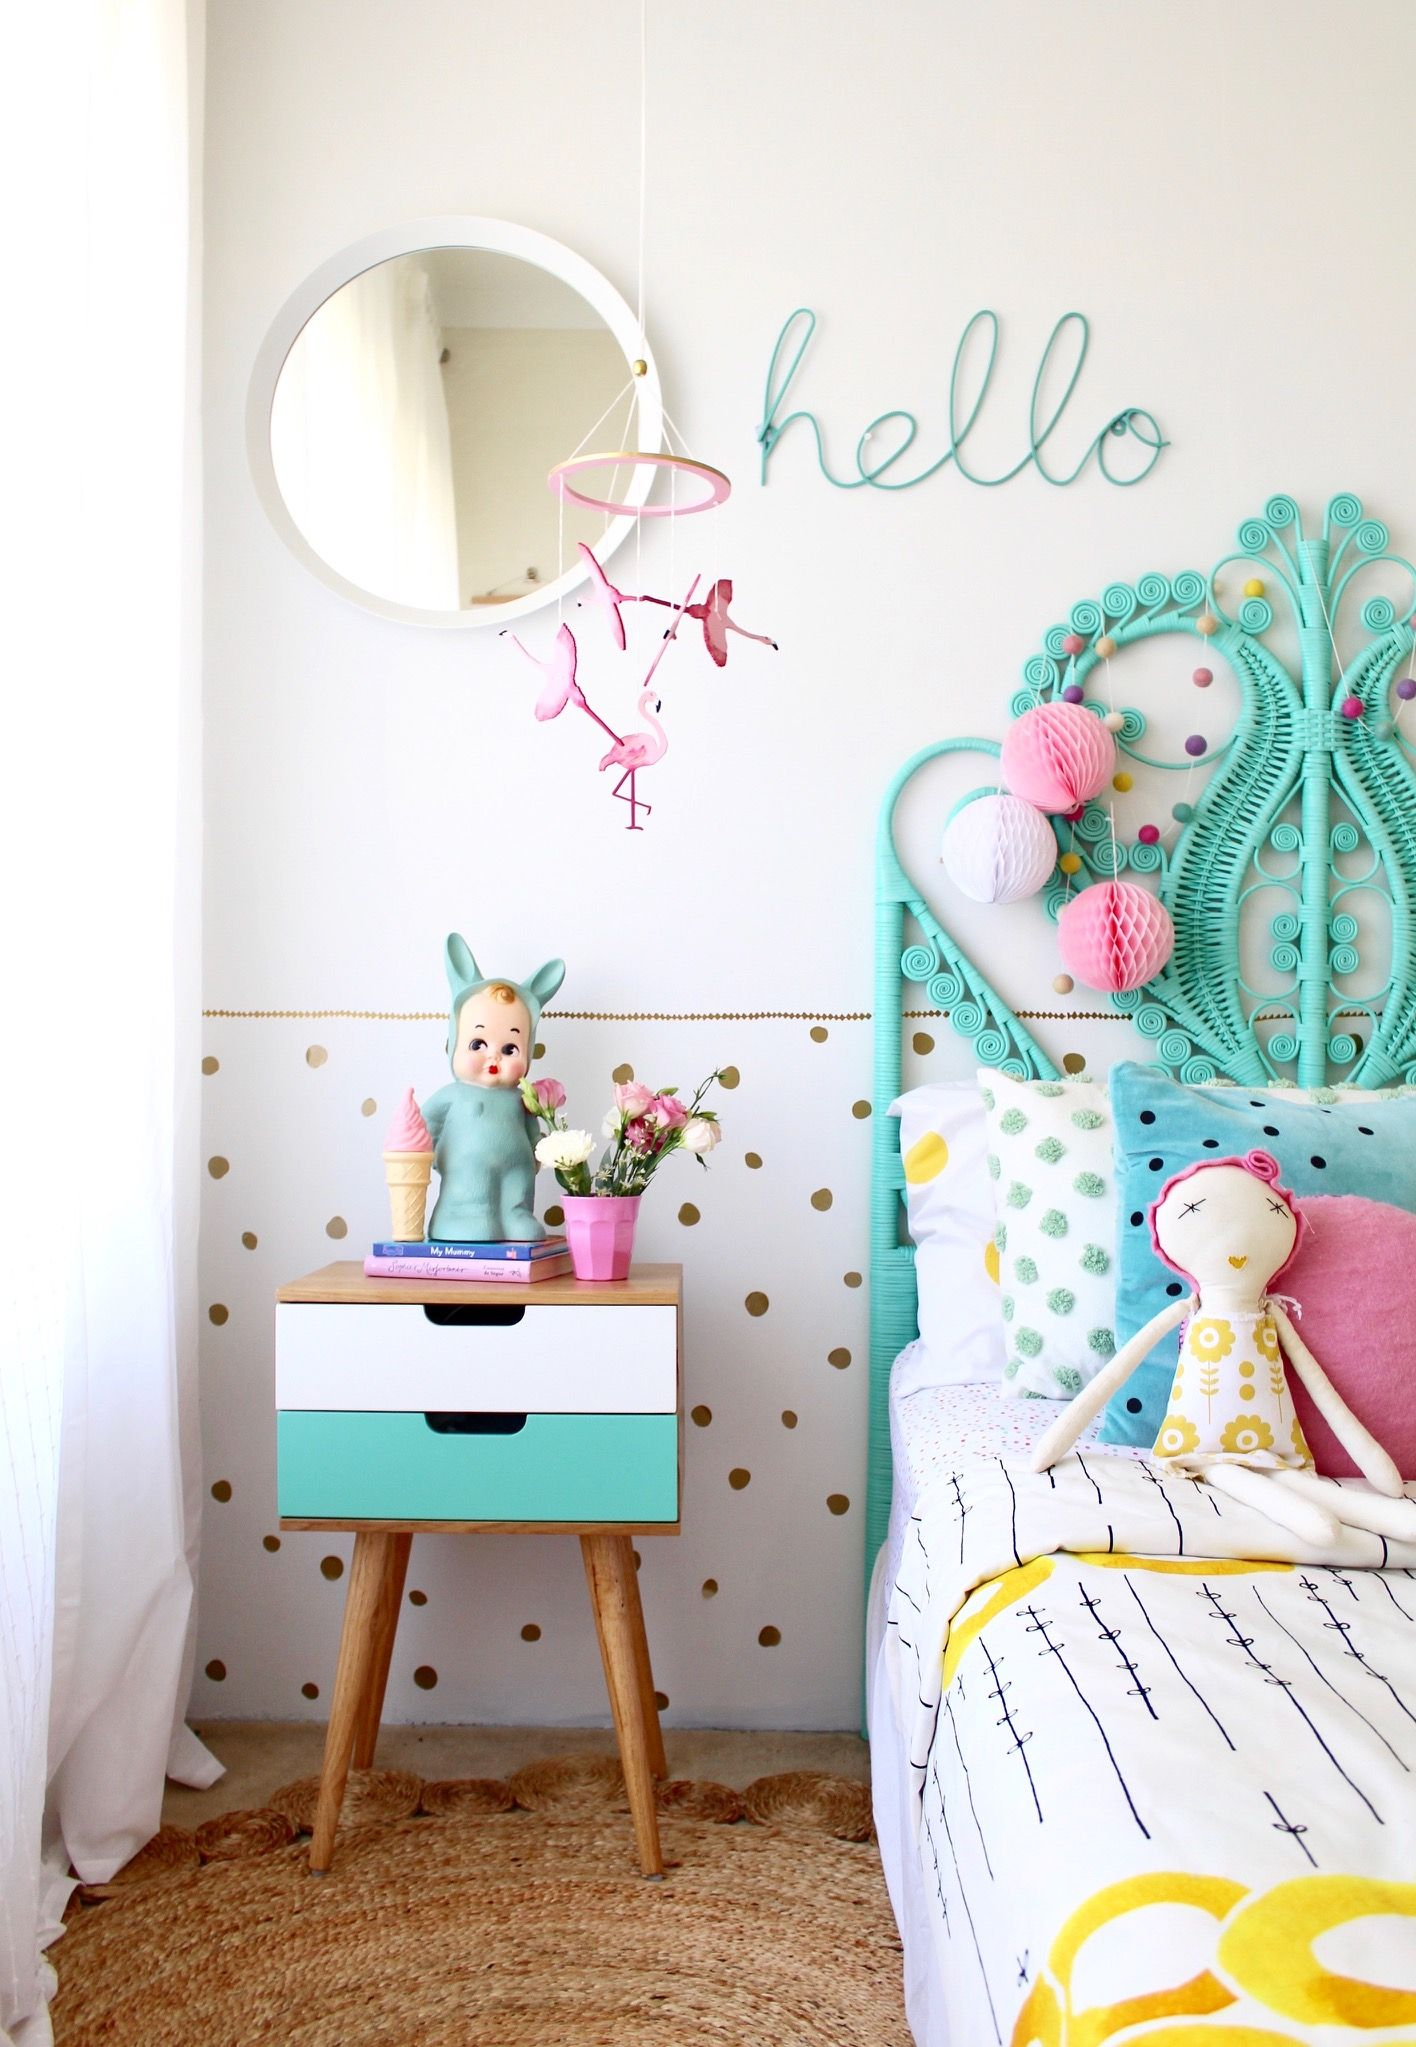 Kids Decor Spotlight - SUN and Co  Deco chambre, Deco chambre